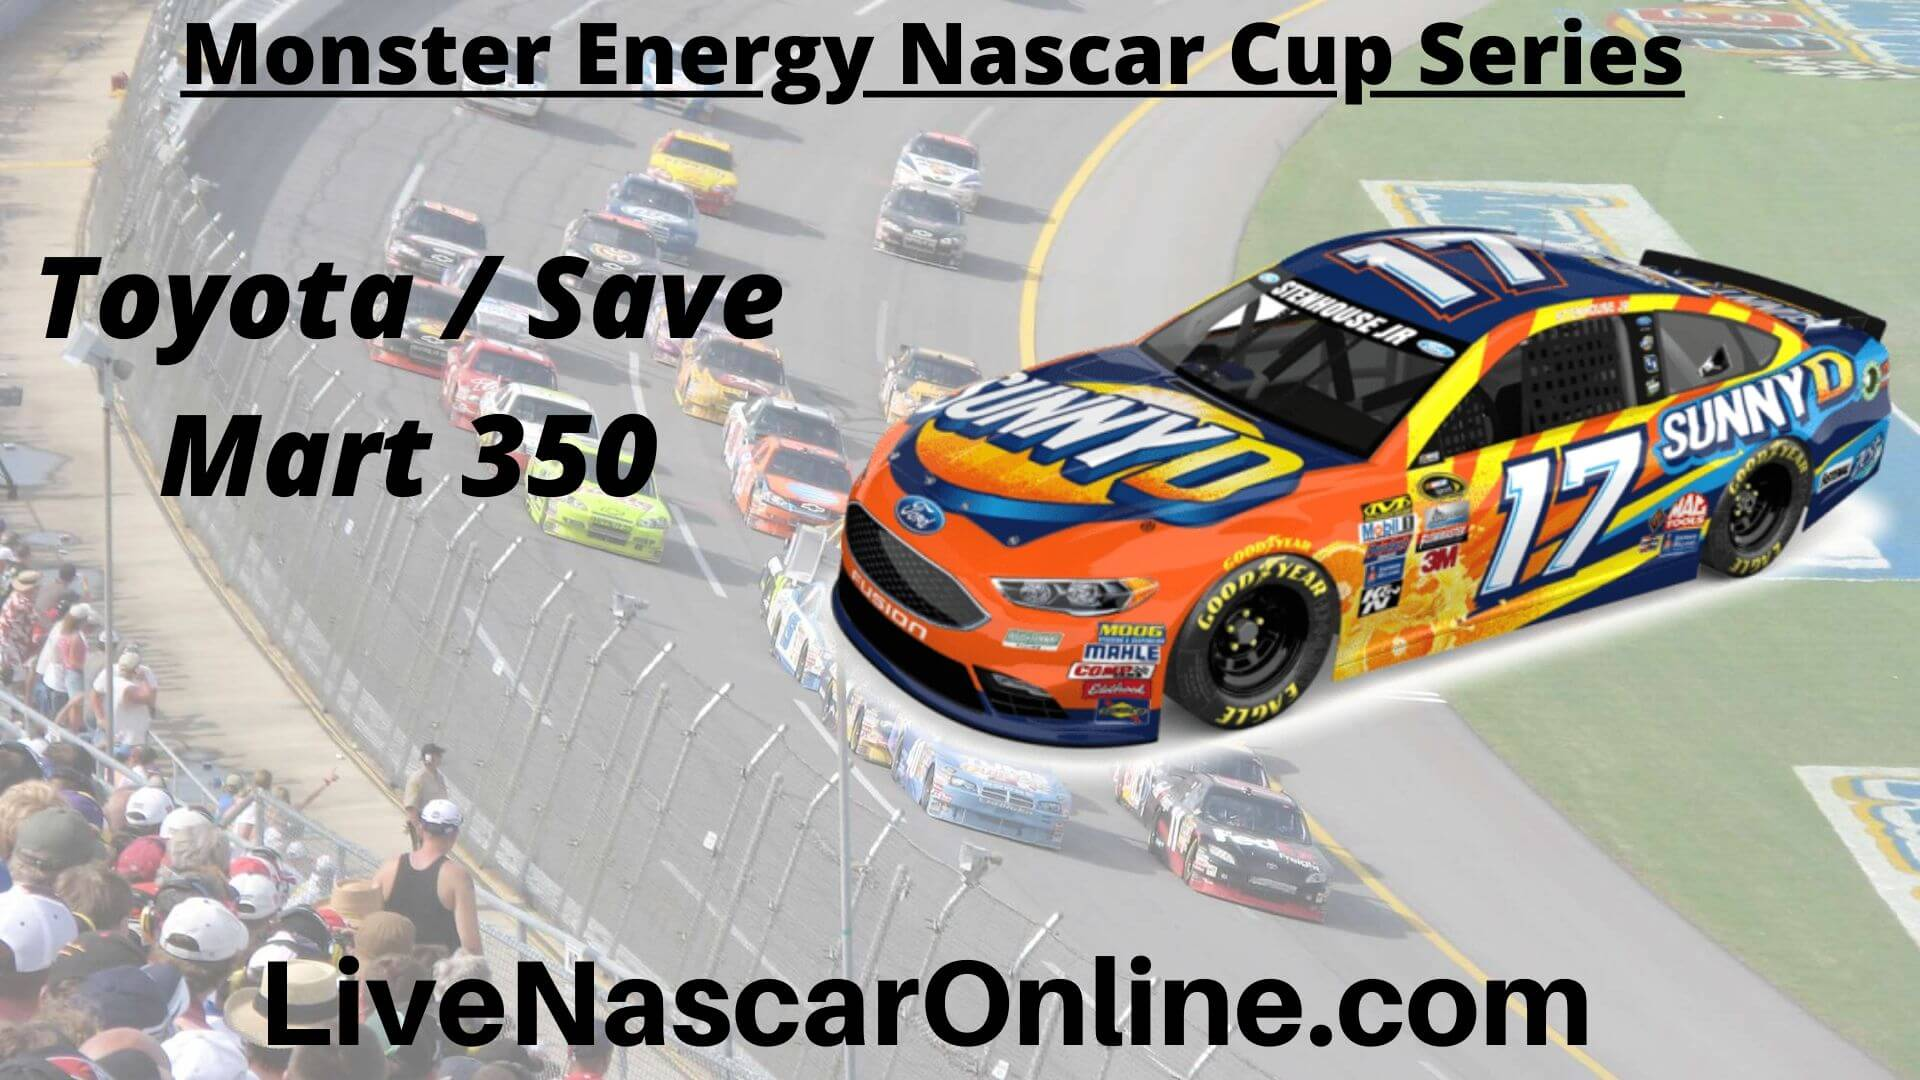 Watch NASCAR Toyota-Save Mart 350 Race Live